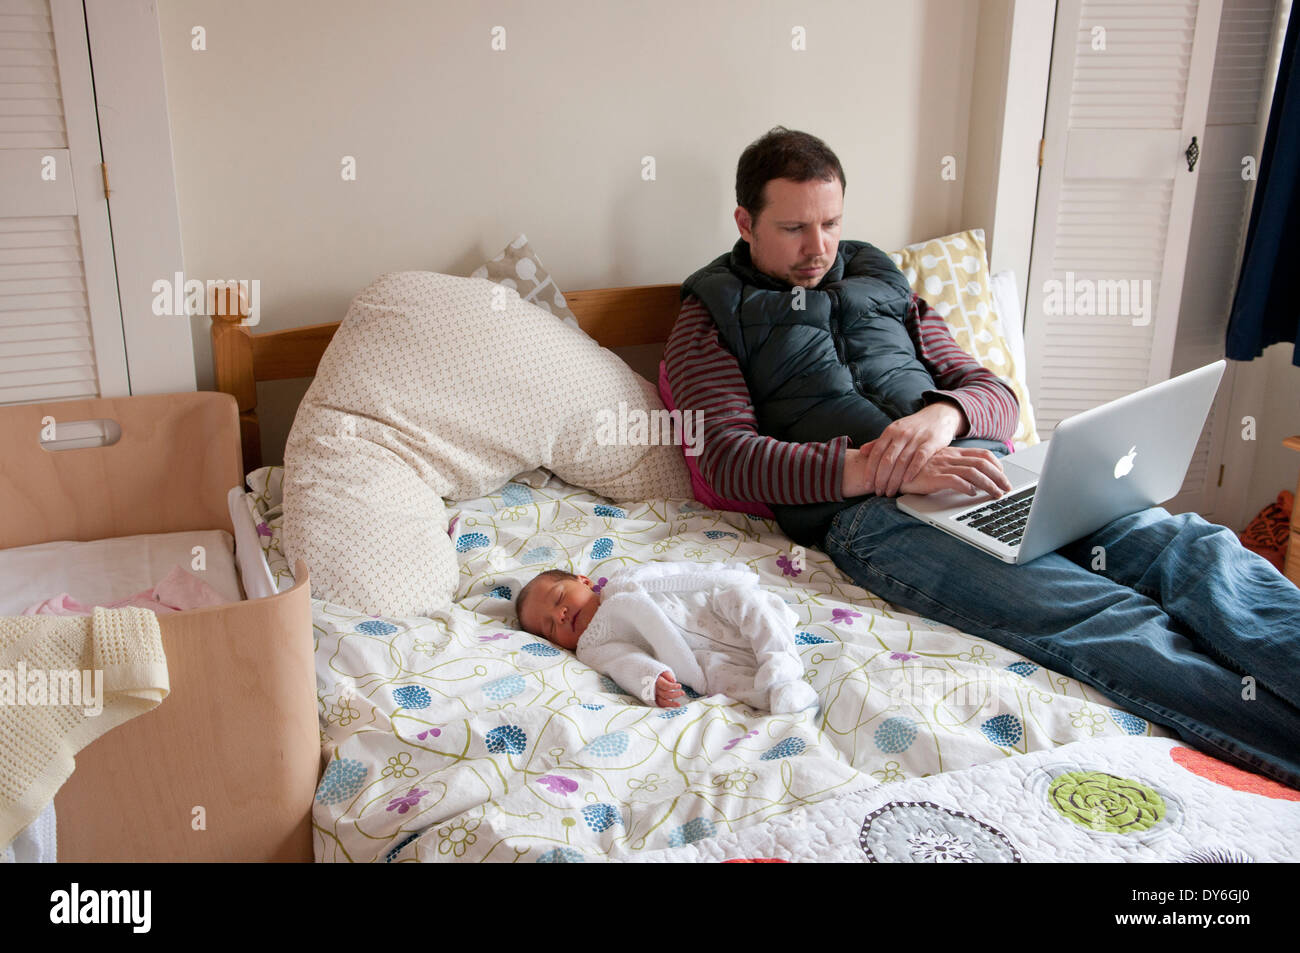 Father with his newborn baby on a bed looking worried - Stock Image